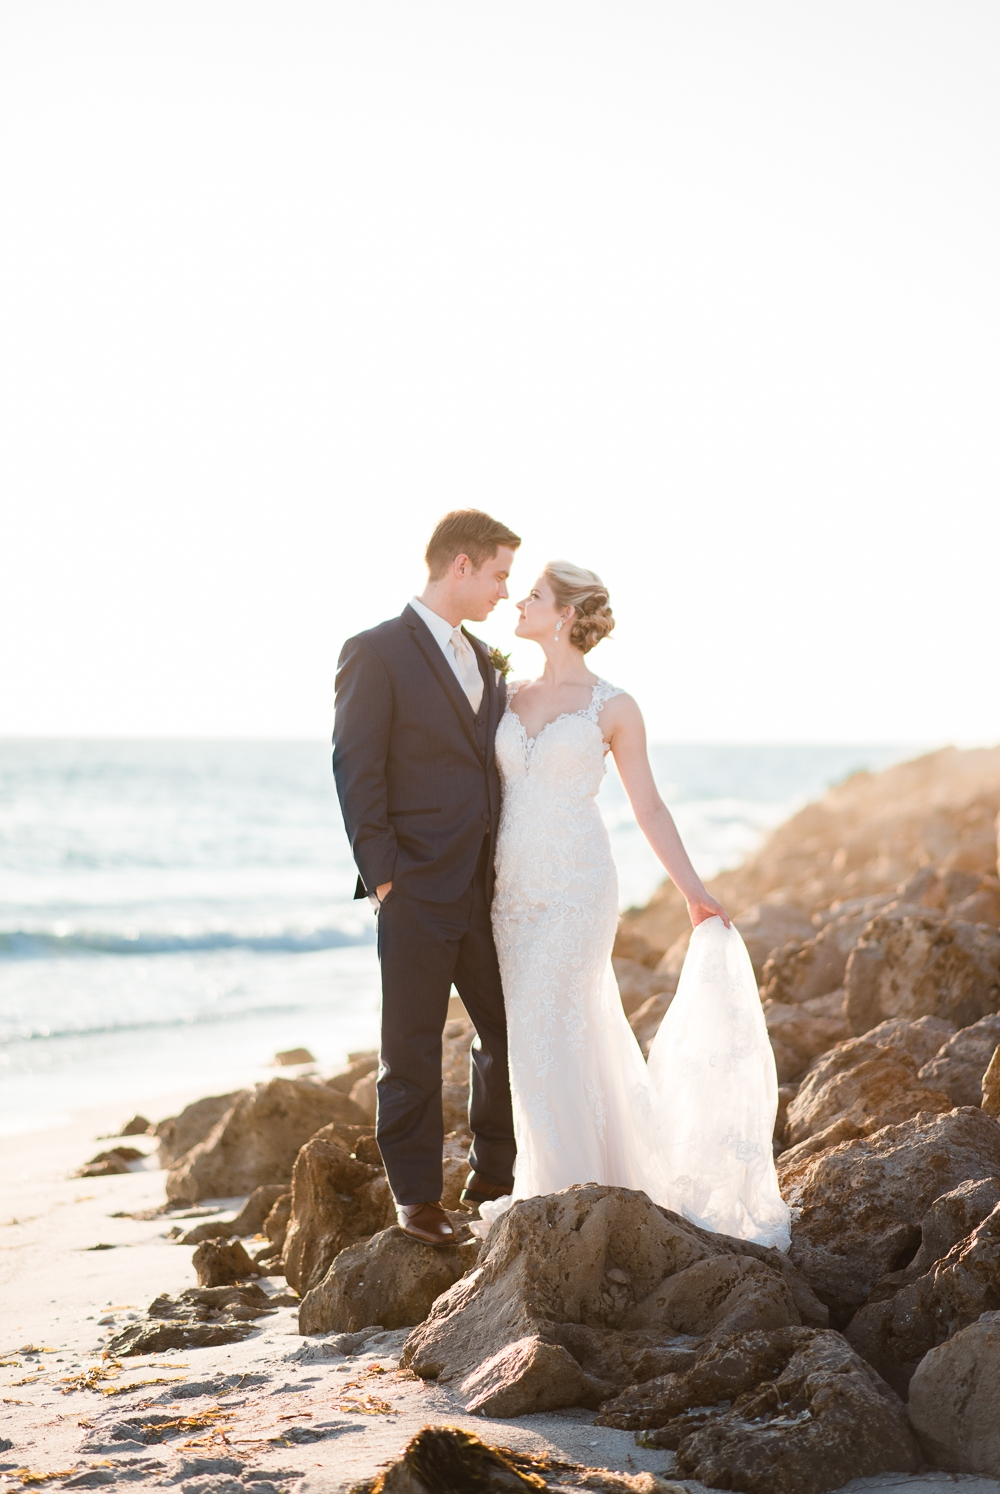 2016 HLM Wedding Beach Shoot 9.jpg